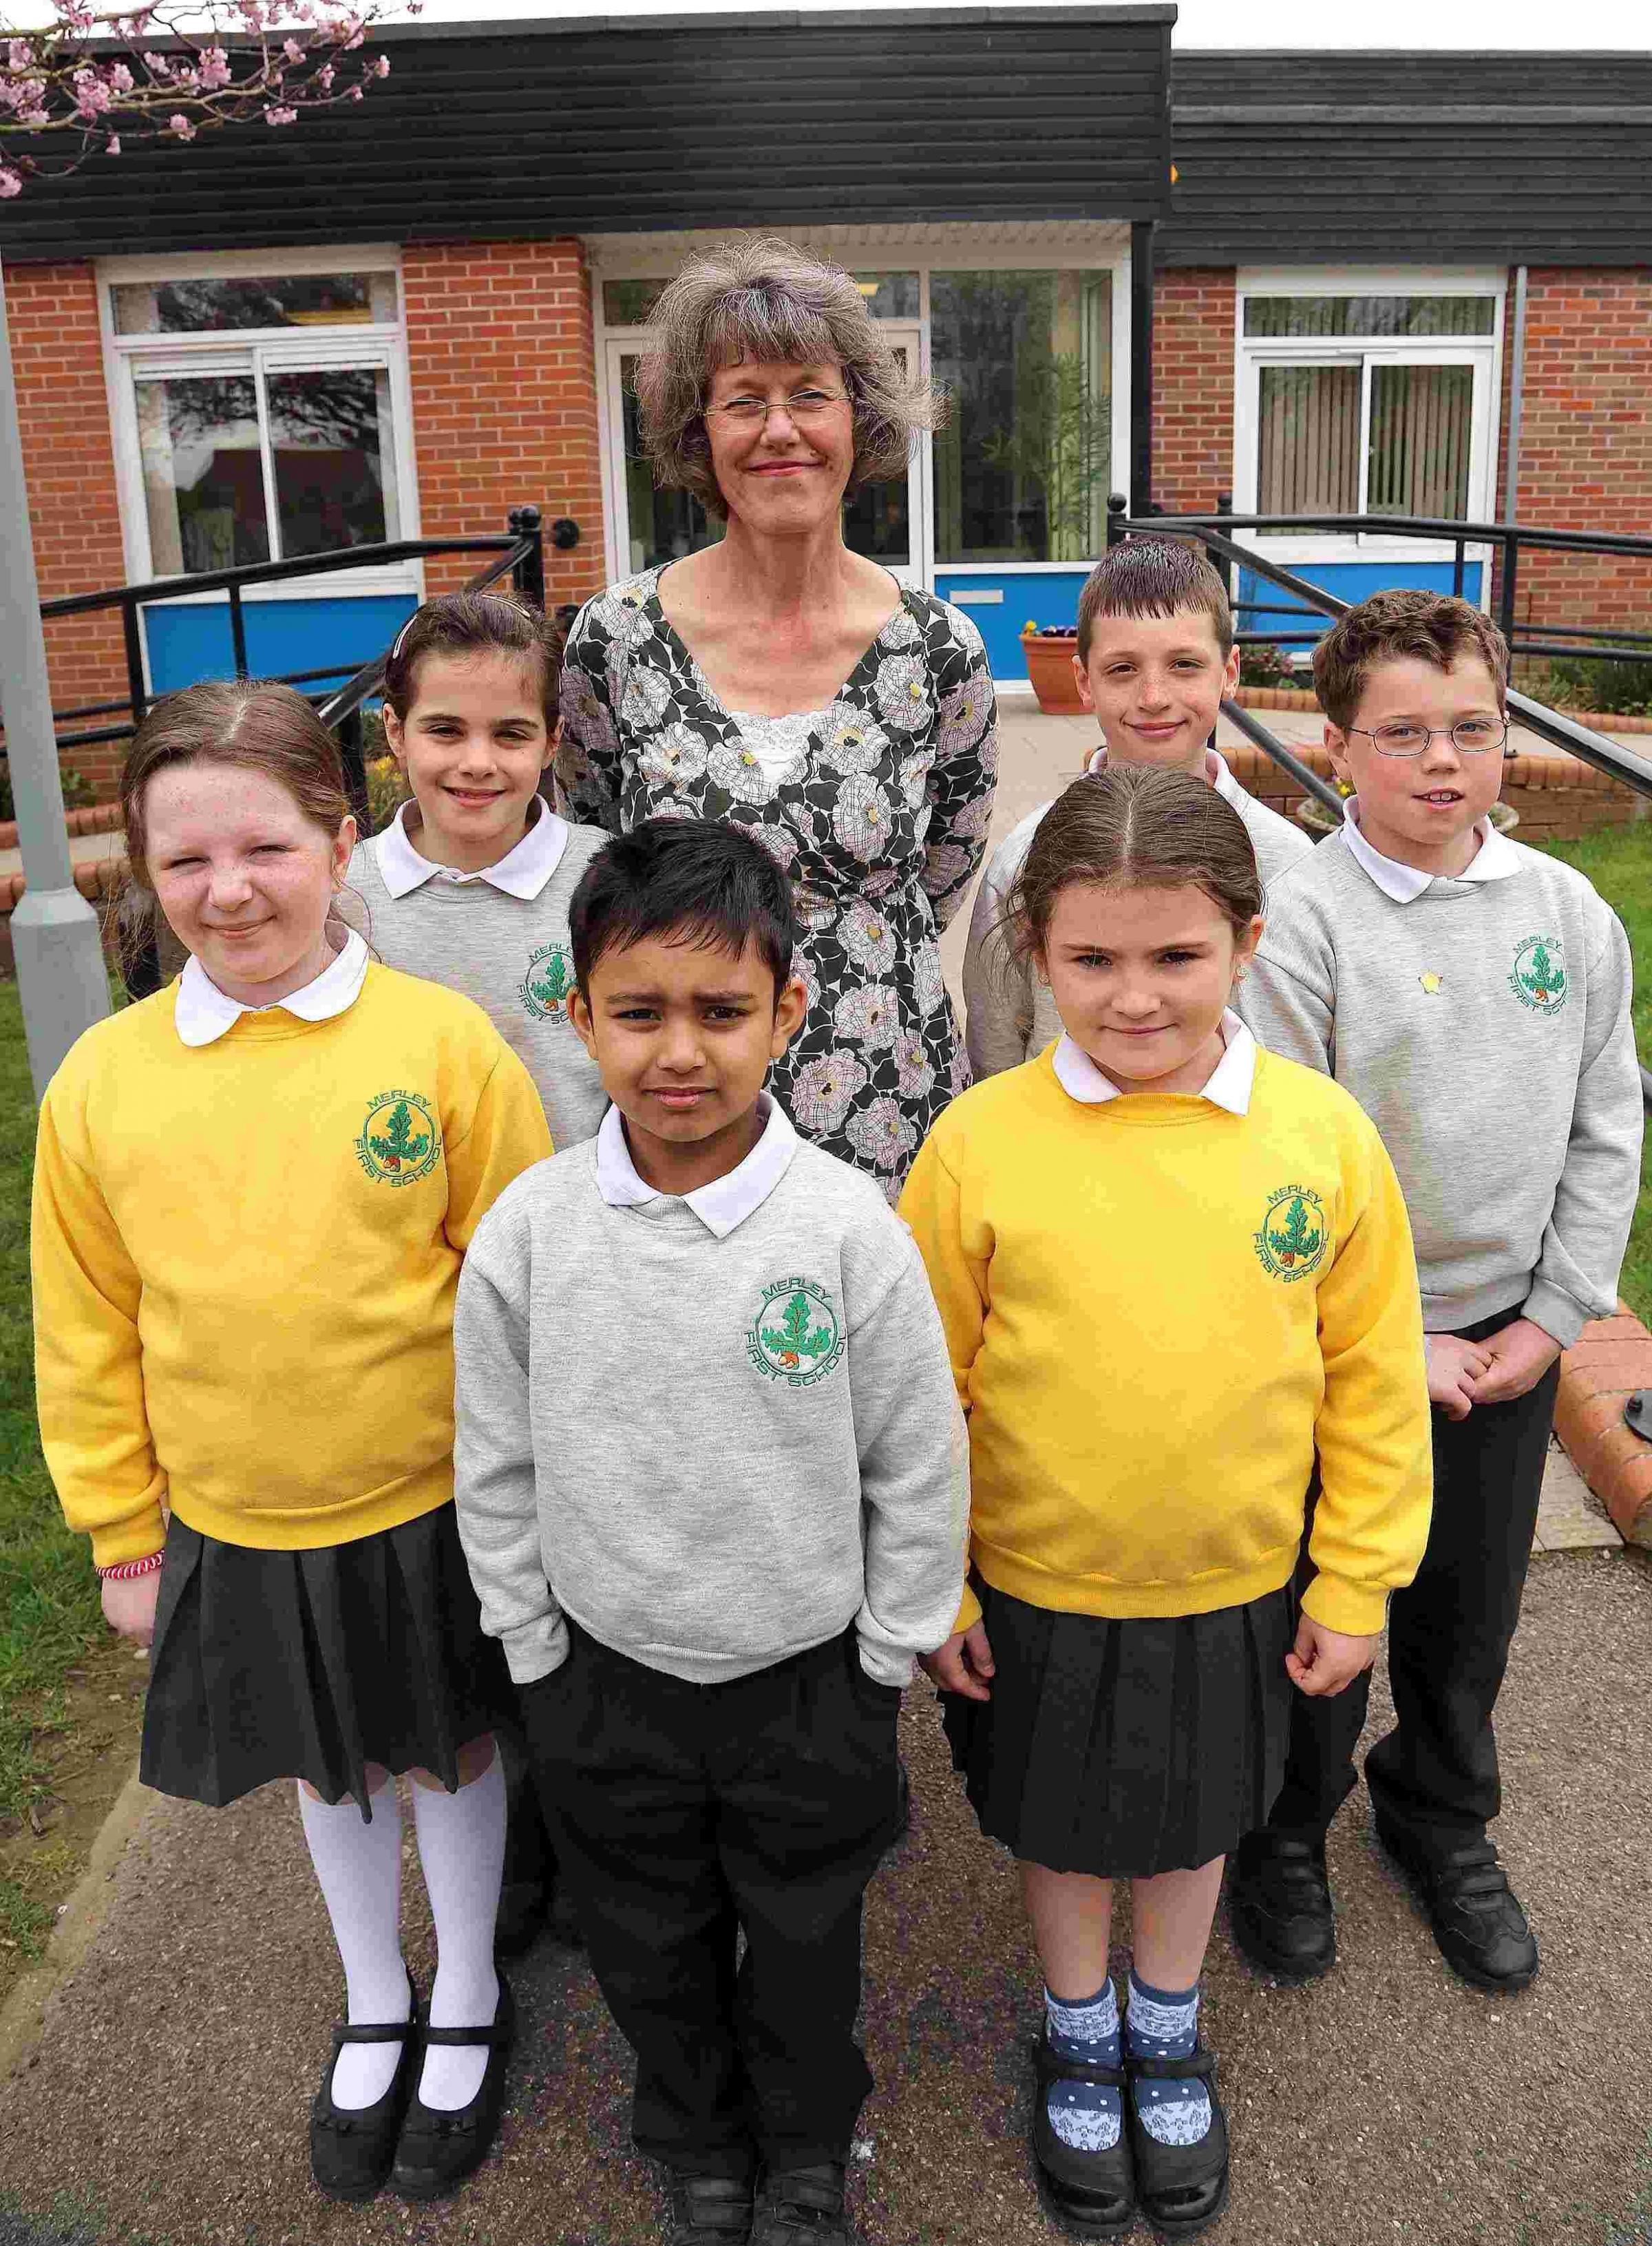 Merley First School's emphasis on exciting learning and pupil enjoyment